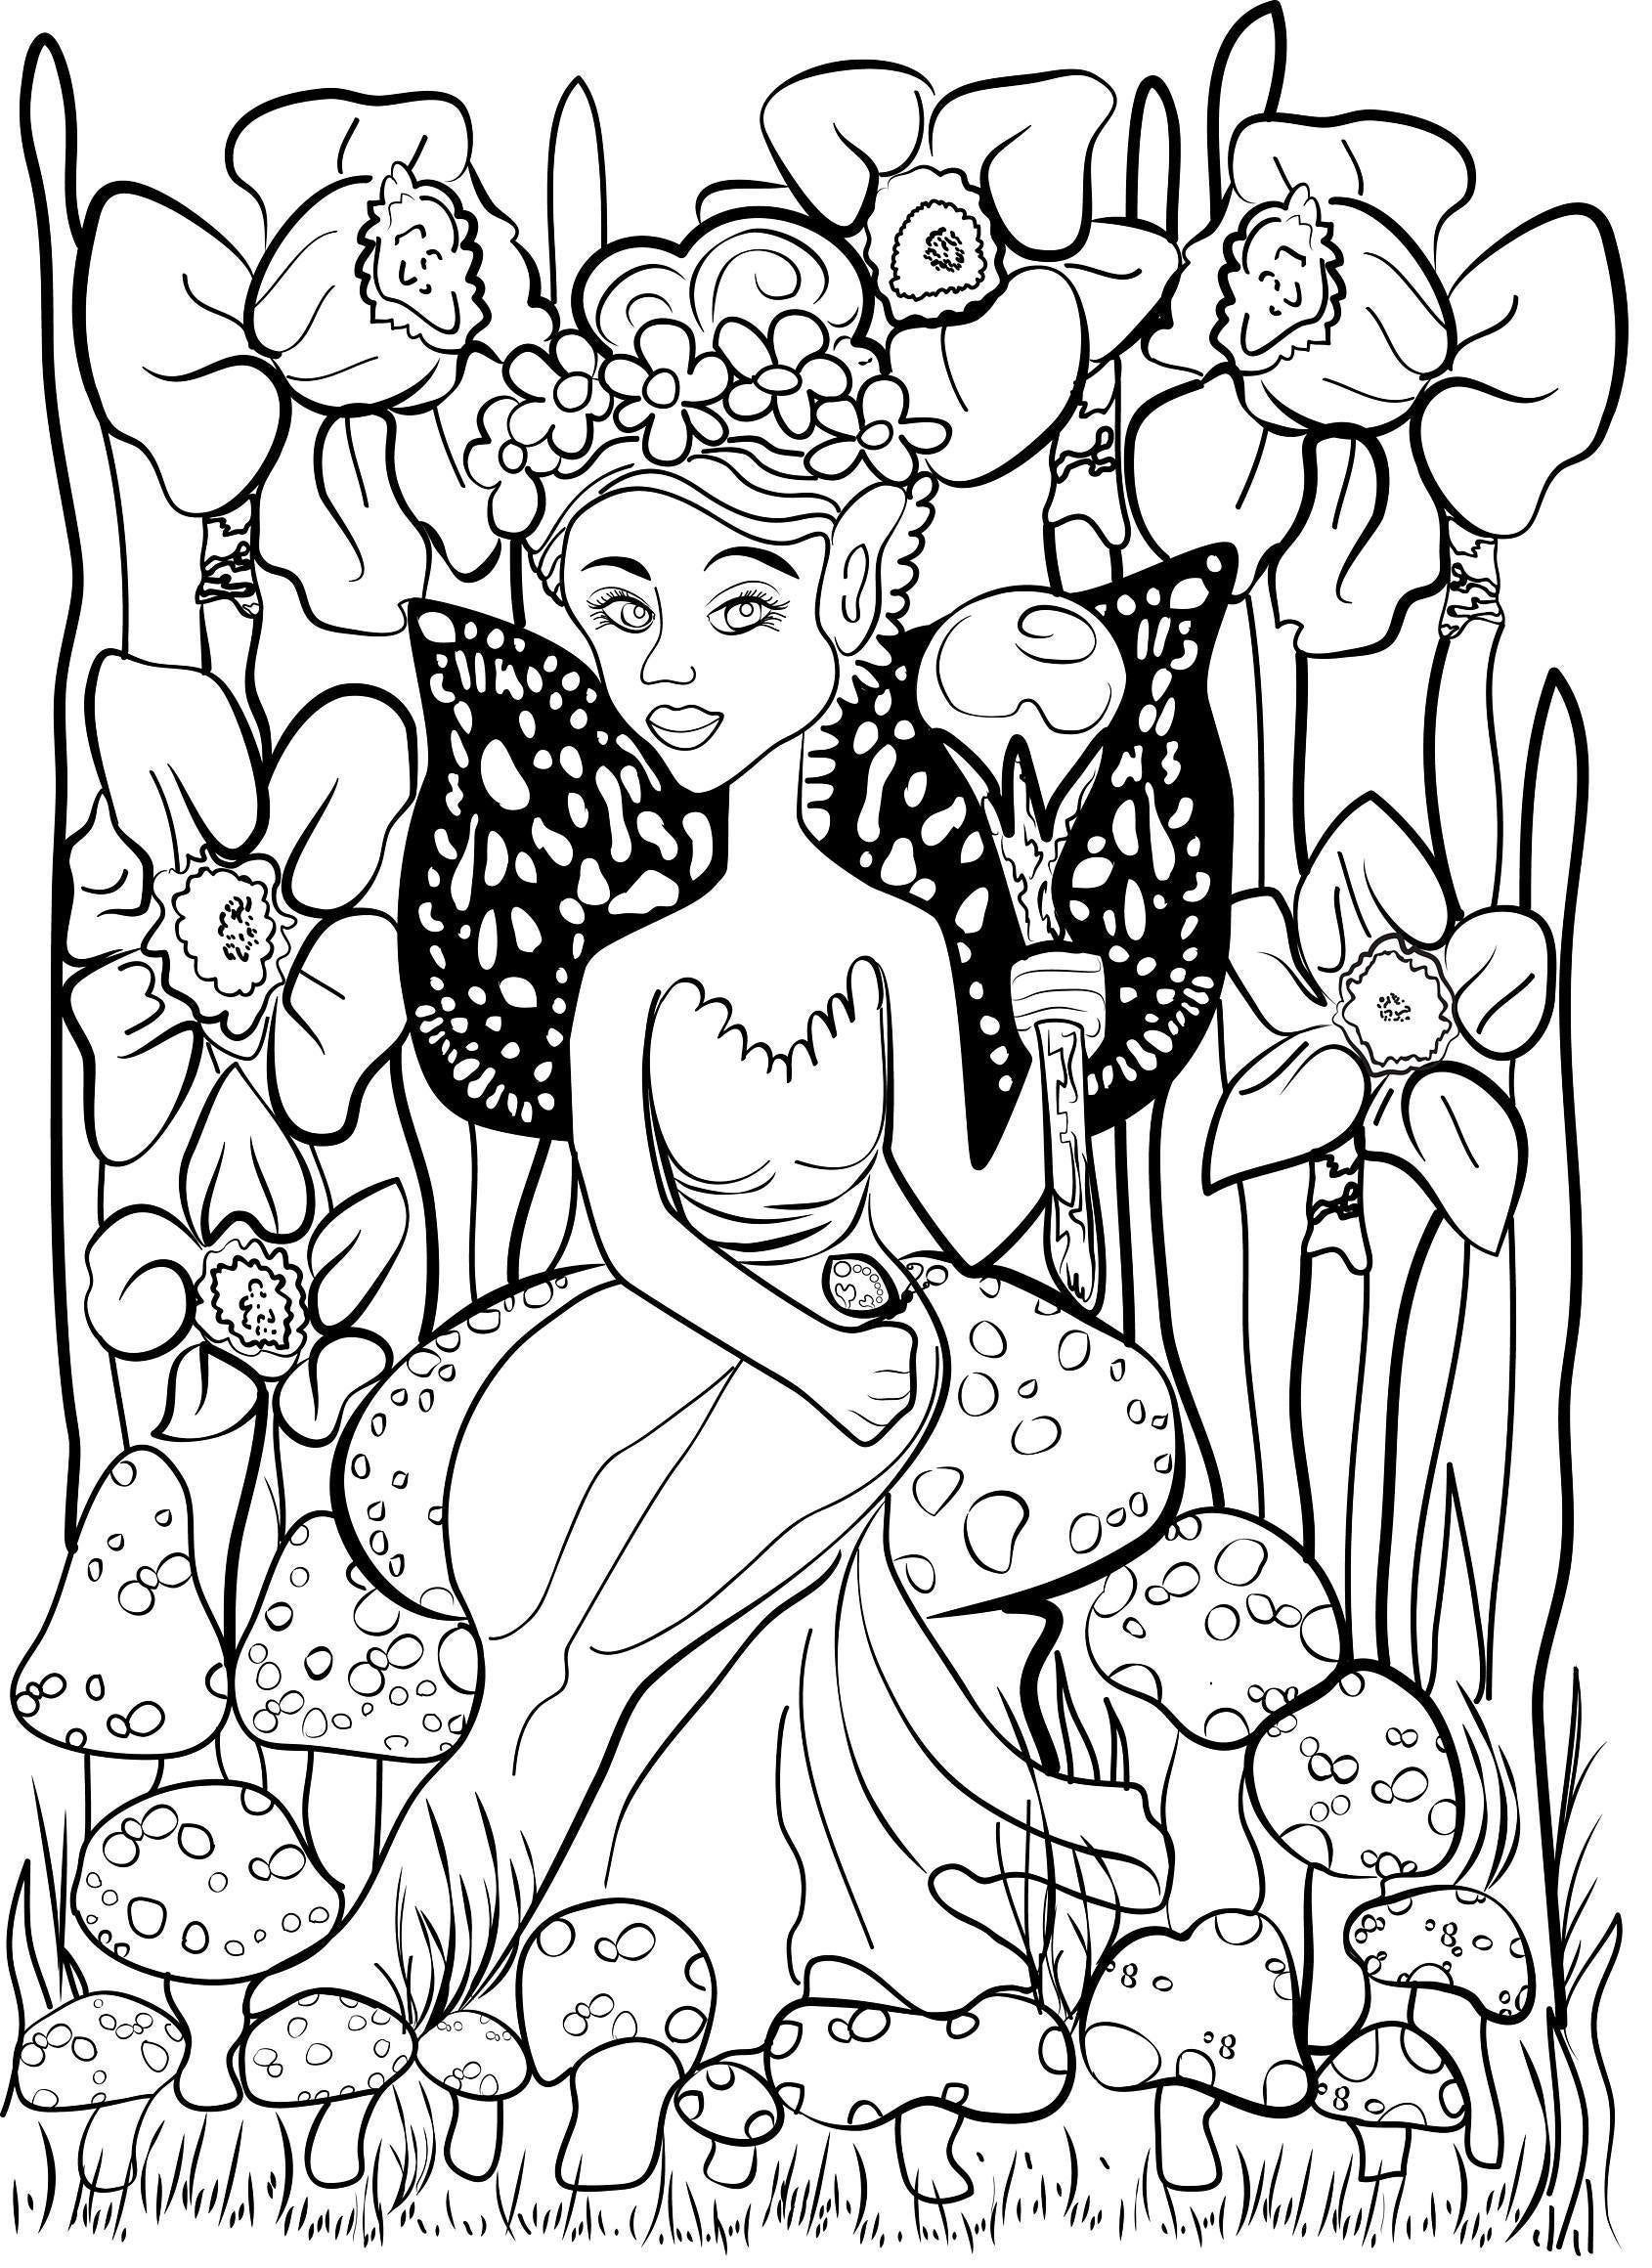 fairy queen coloring pages fairy queen coloring pages shopping guide we are number coloring queen fairy pages